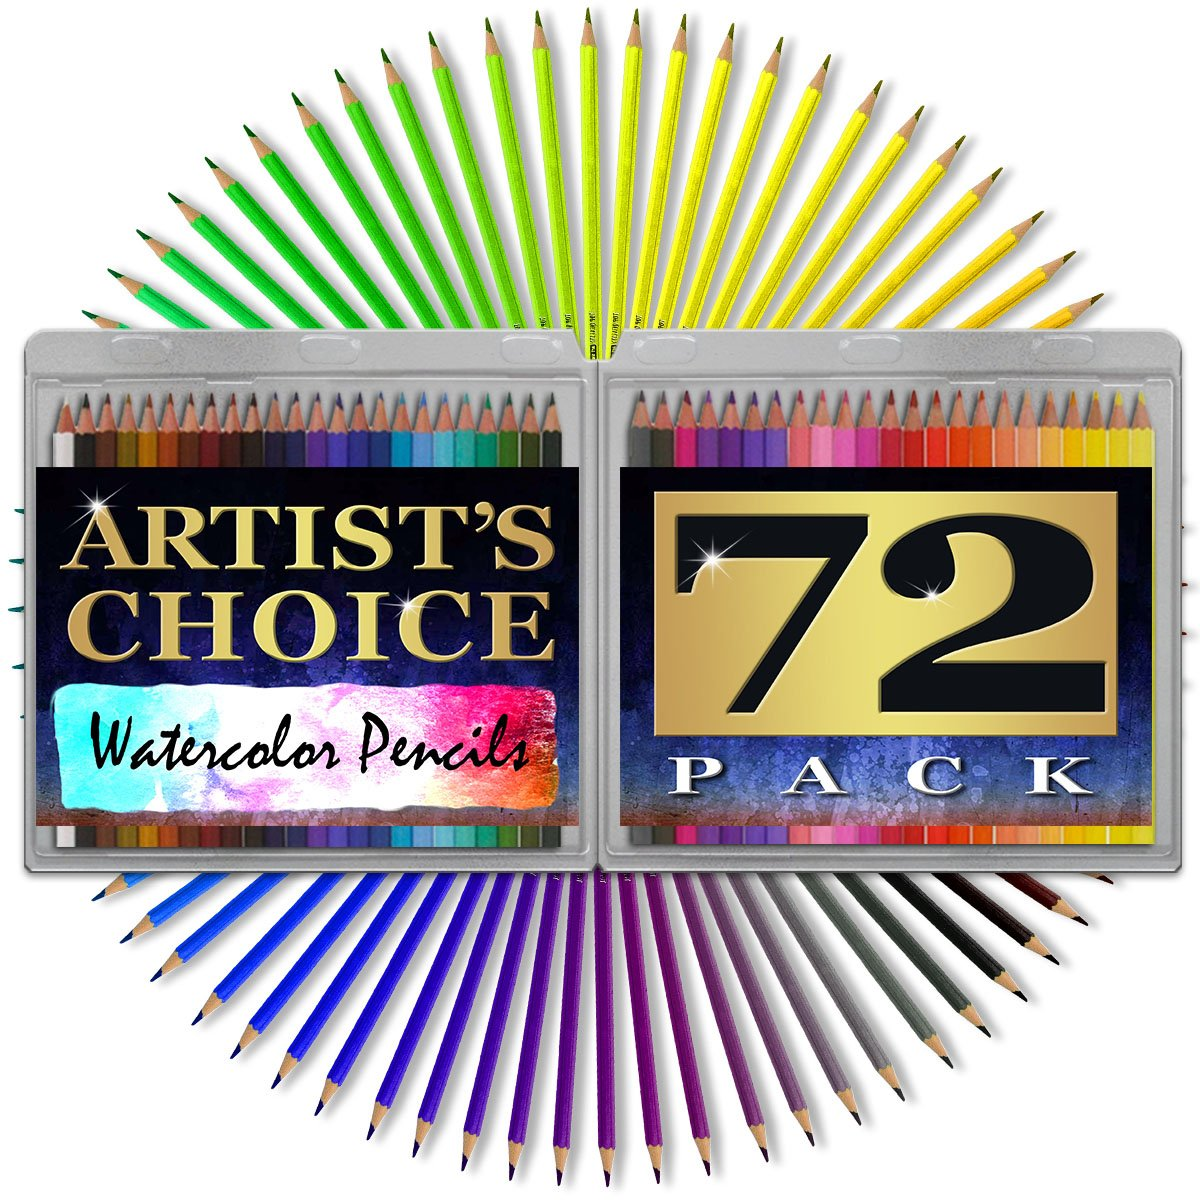 Watercolor Pencils - HUGE 72 PACK - 7 Inch Water Soulble HIGH QUALITY Colored Pencils - BONUS Watercolor Paint Brush Included - Carrying Case Included - Perfect Set for Technical Water Color Drawing